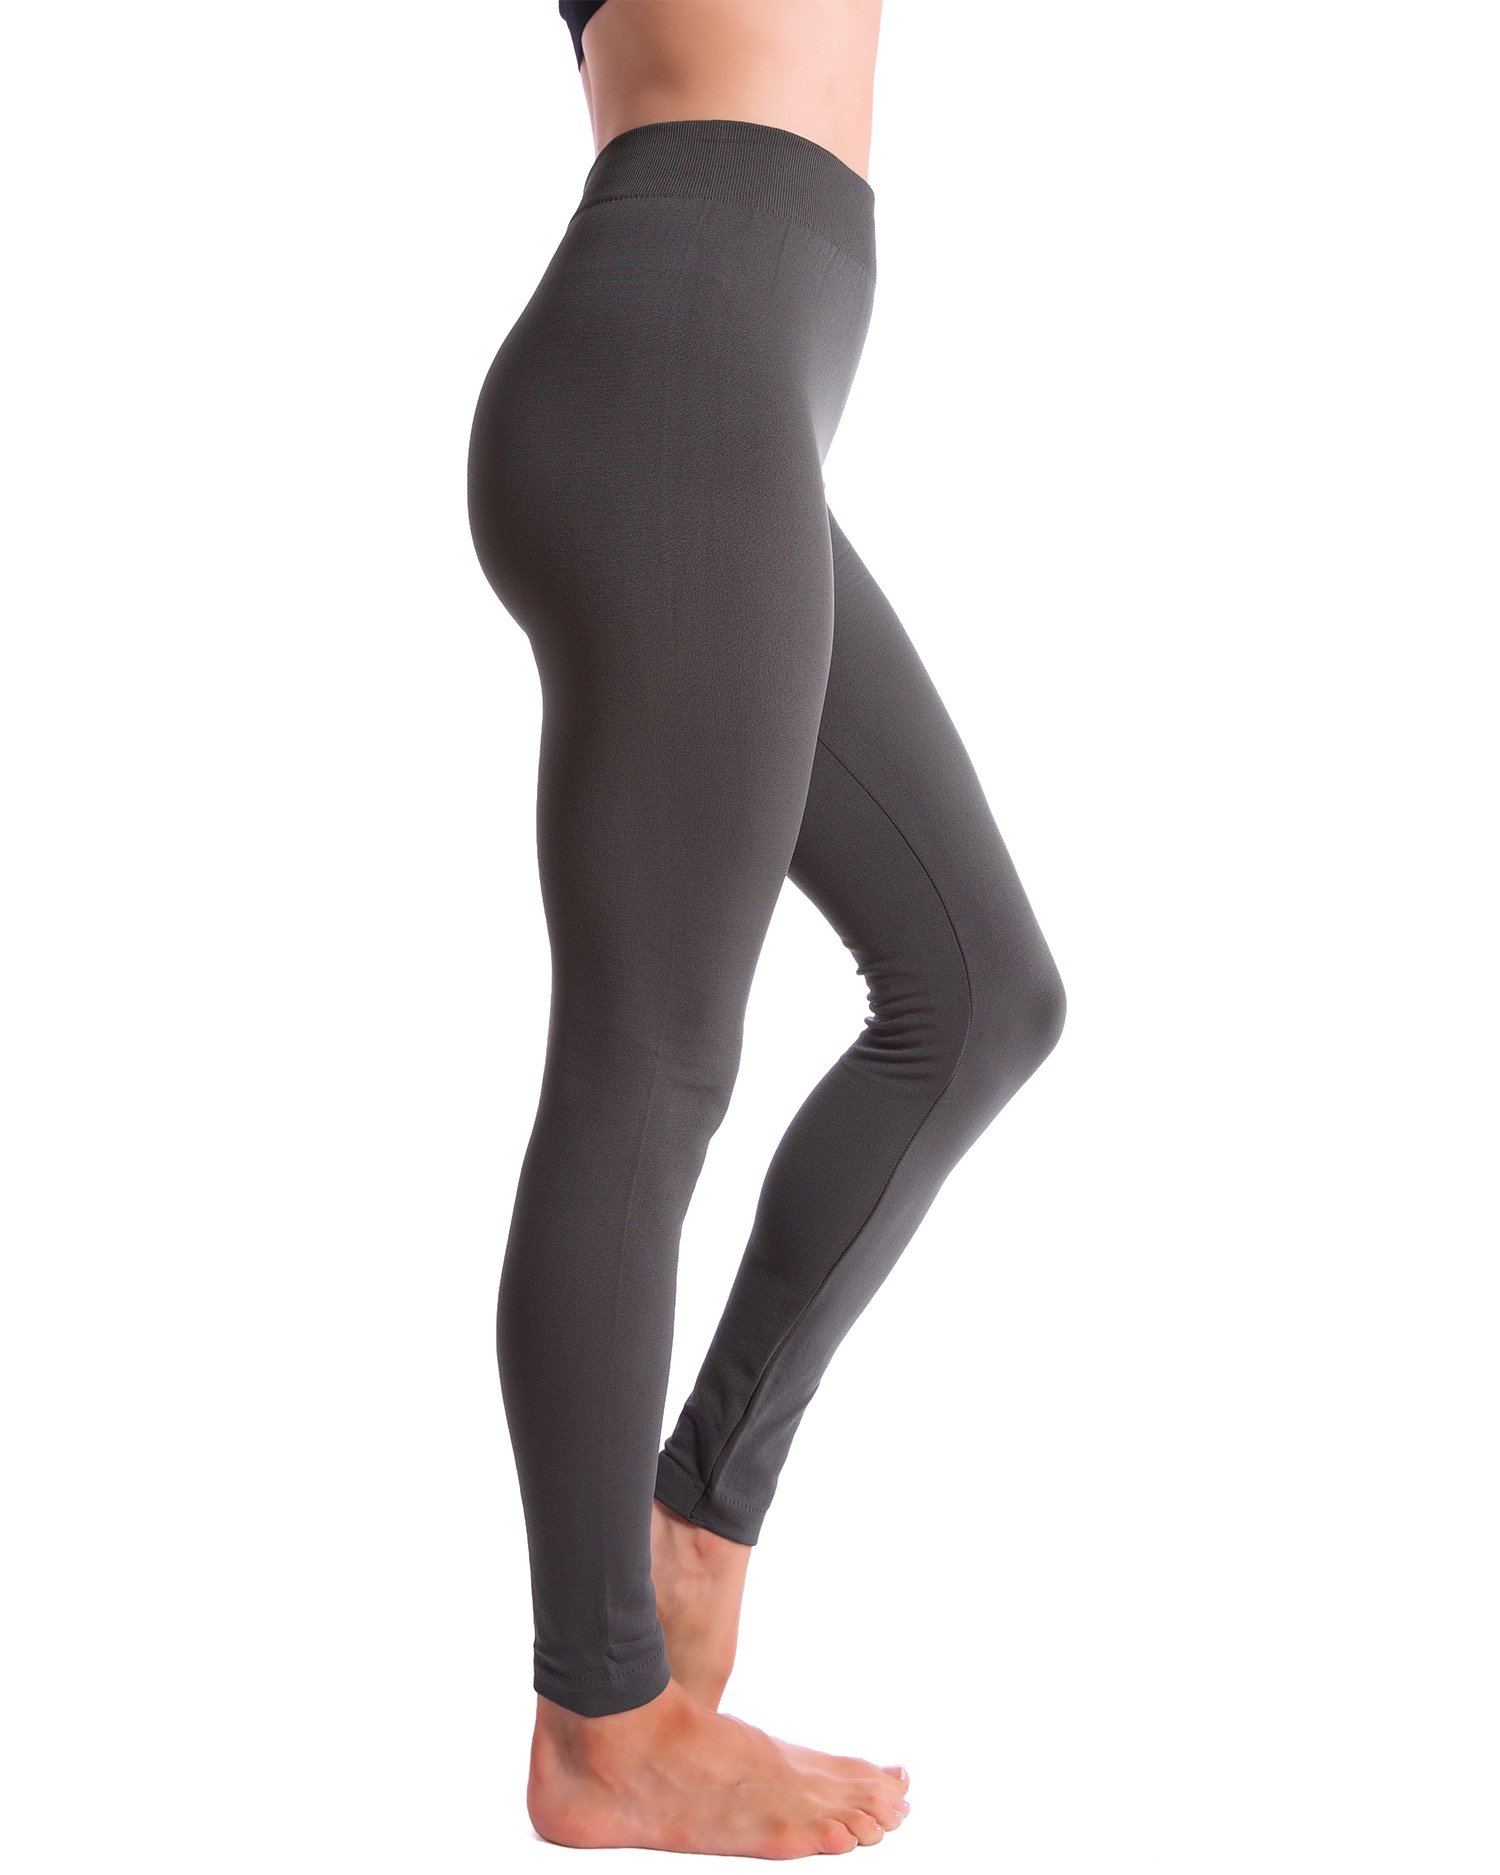 3-Pack Fleece Lined Thick Brushed Leggings by Homma (S/M/L, BLACK/NAVY/GREY) by Homma (Image #2)